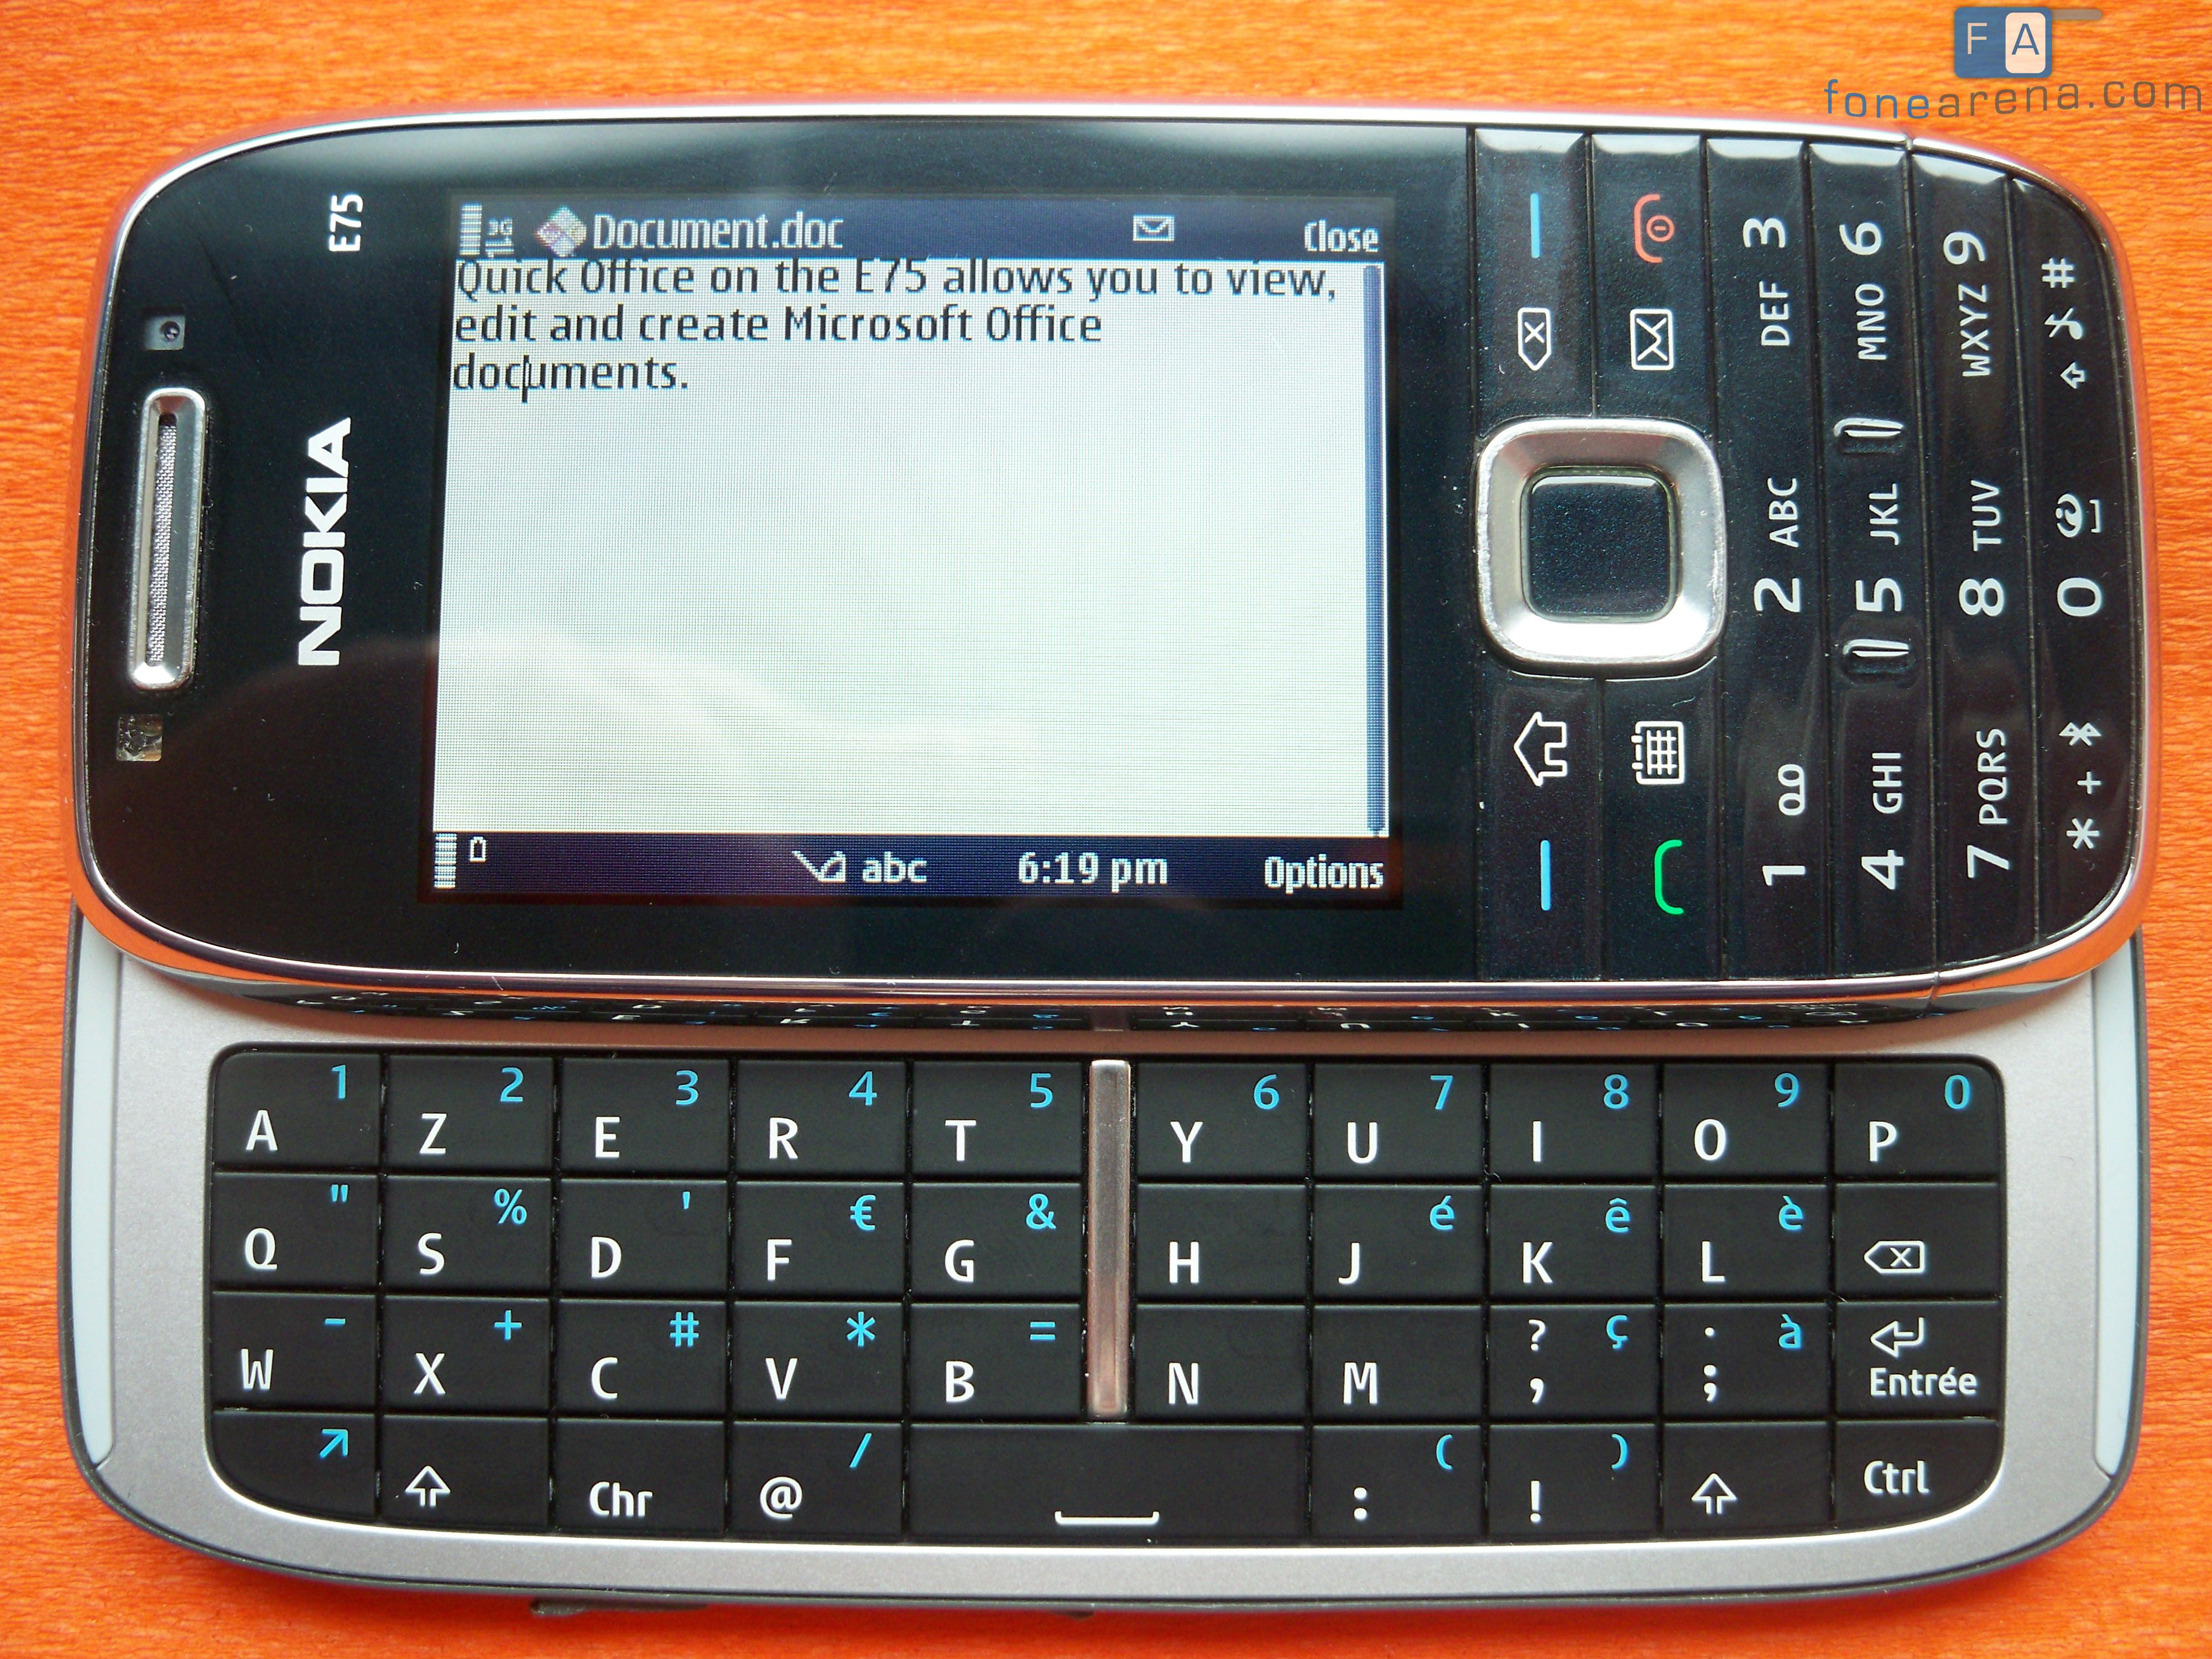 The Nokia E75 In All Its Glory